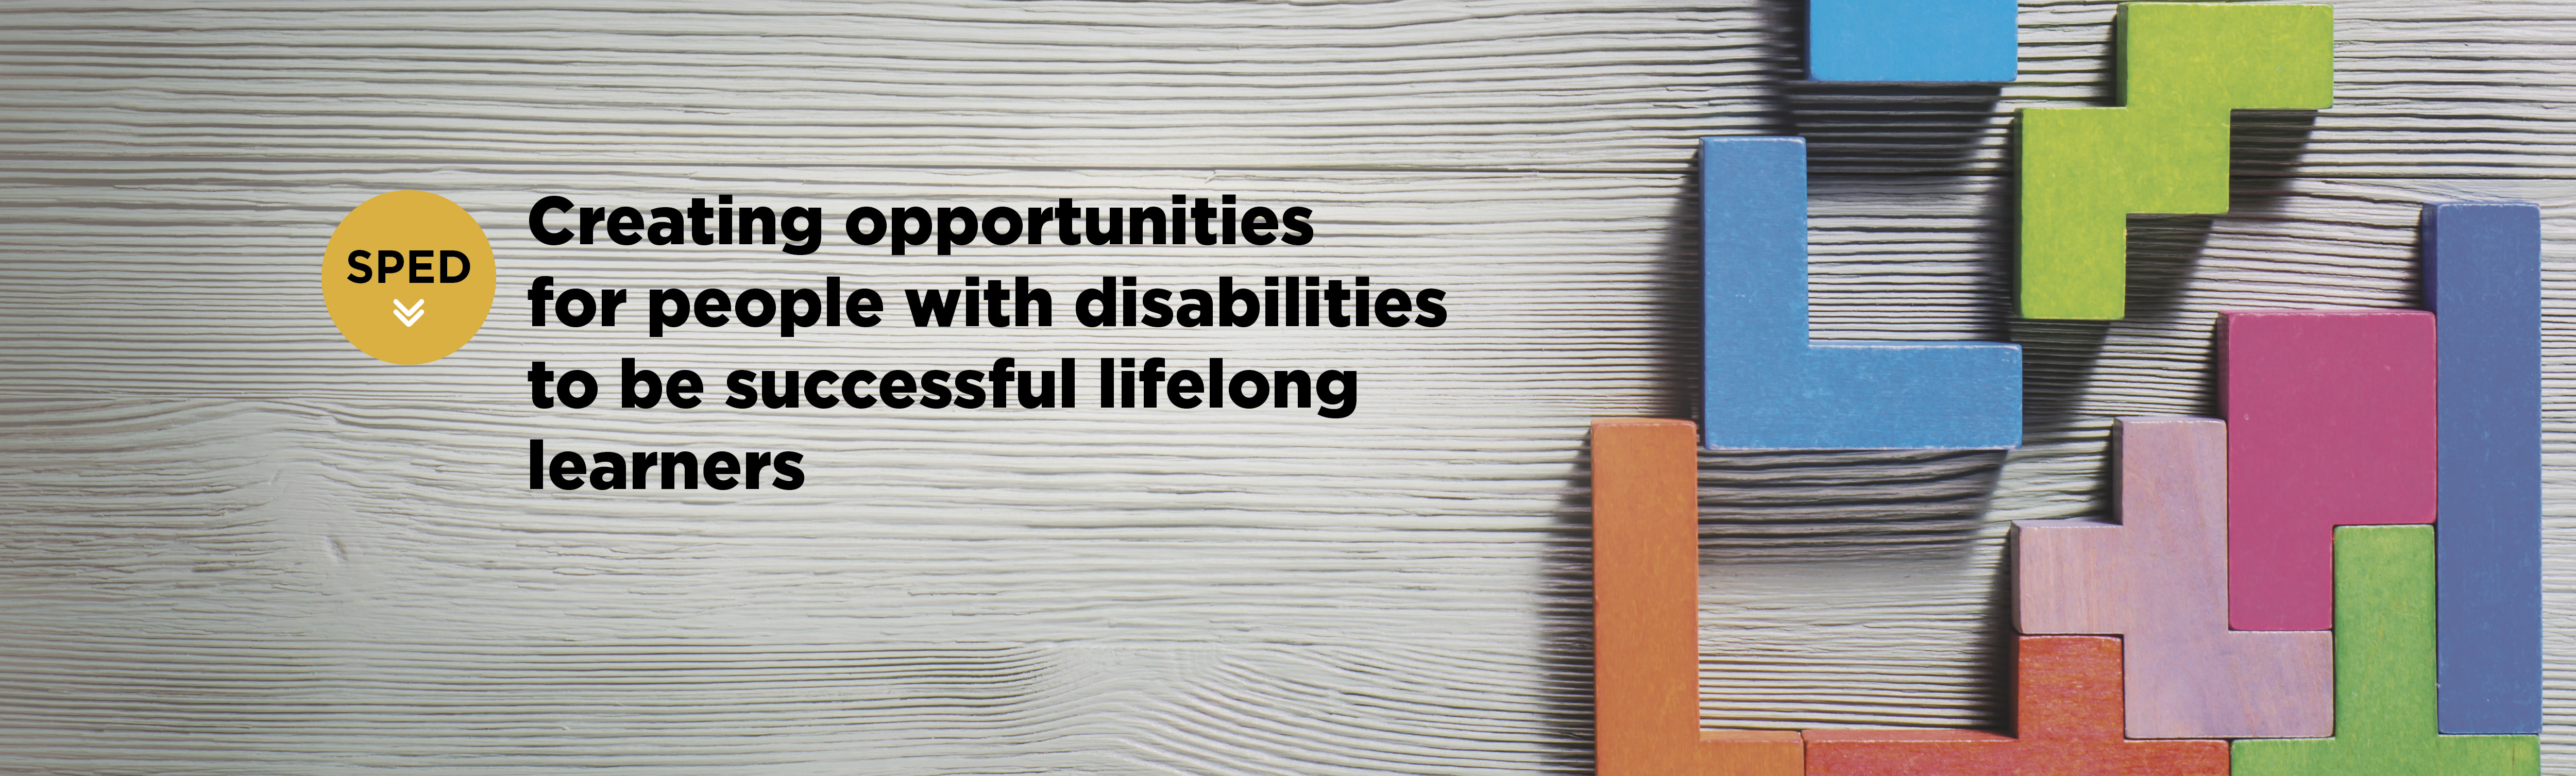 Department of special education creating opportunities for we strive to prepare educators to assist children youth and adults with disabilities to be academically and socially successful lifelong learners xflitez Images